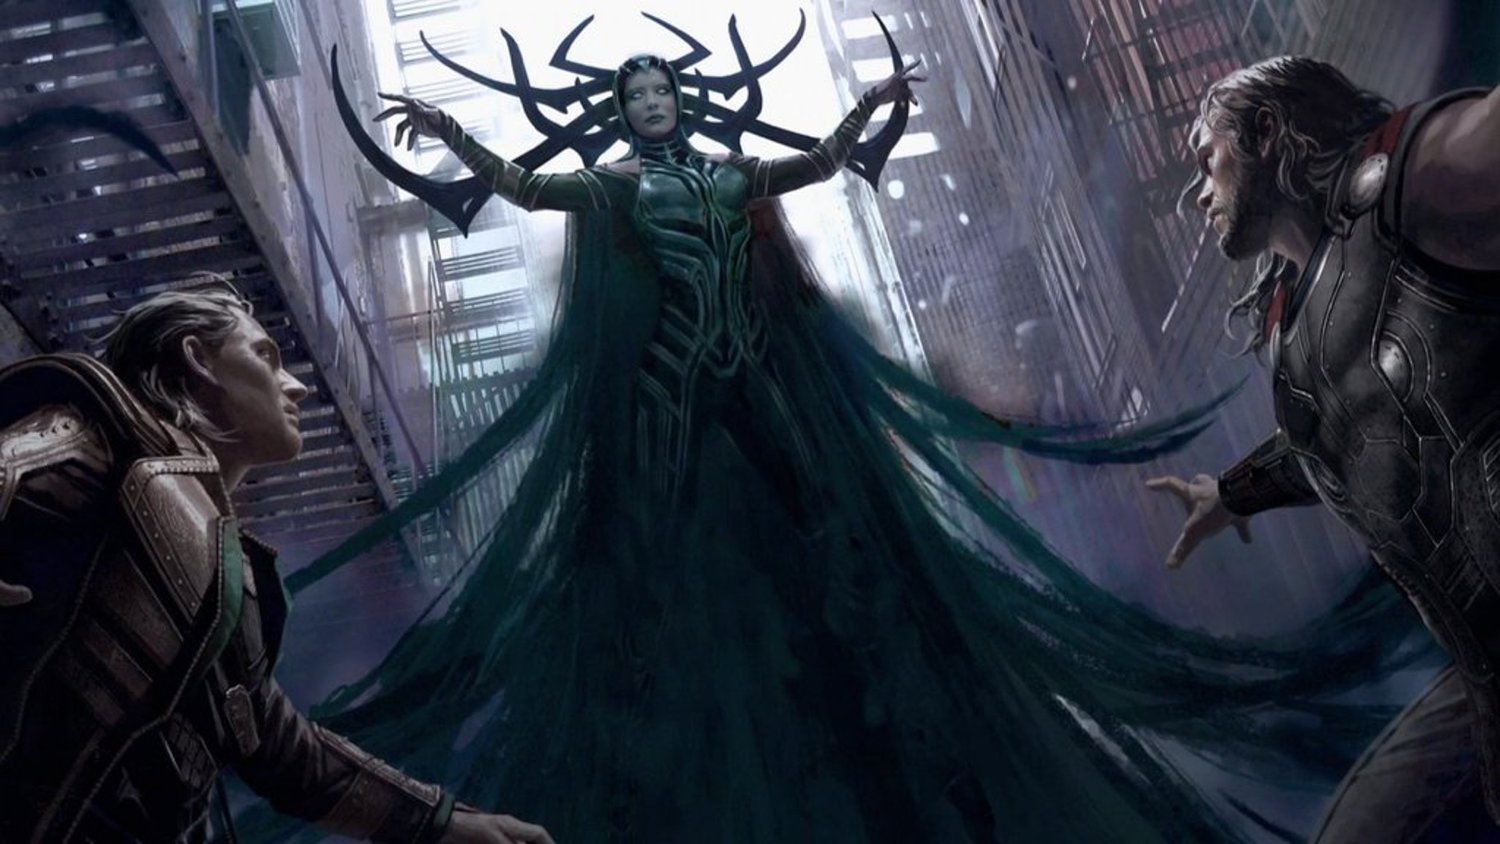 Thor and Hulk Fight in New THOR: RAGNAROK Concept Art and First Good Look at the Villain Hela